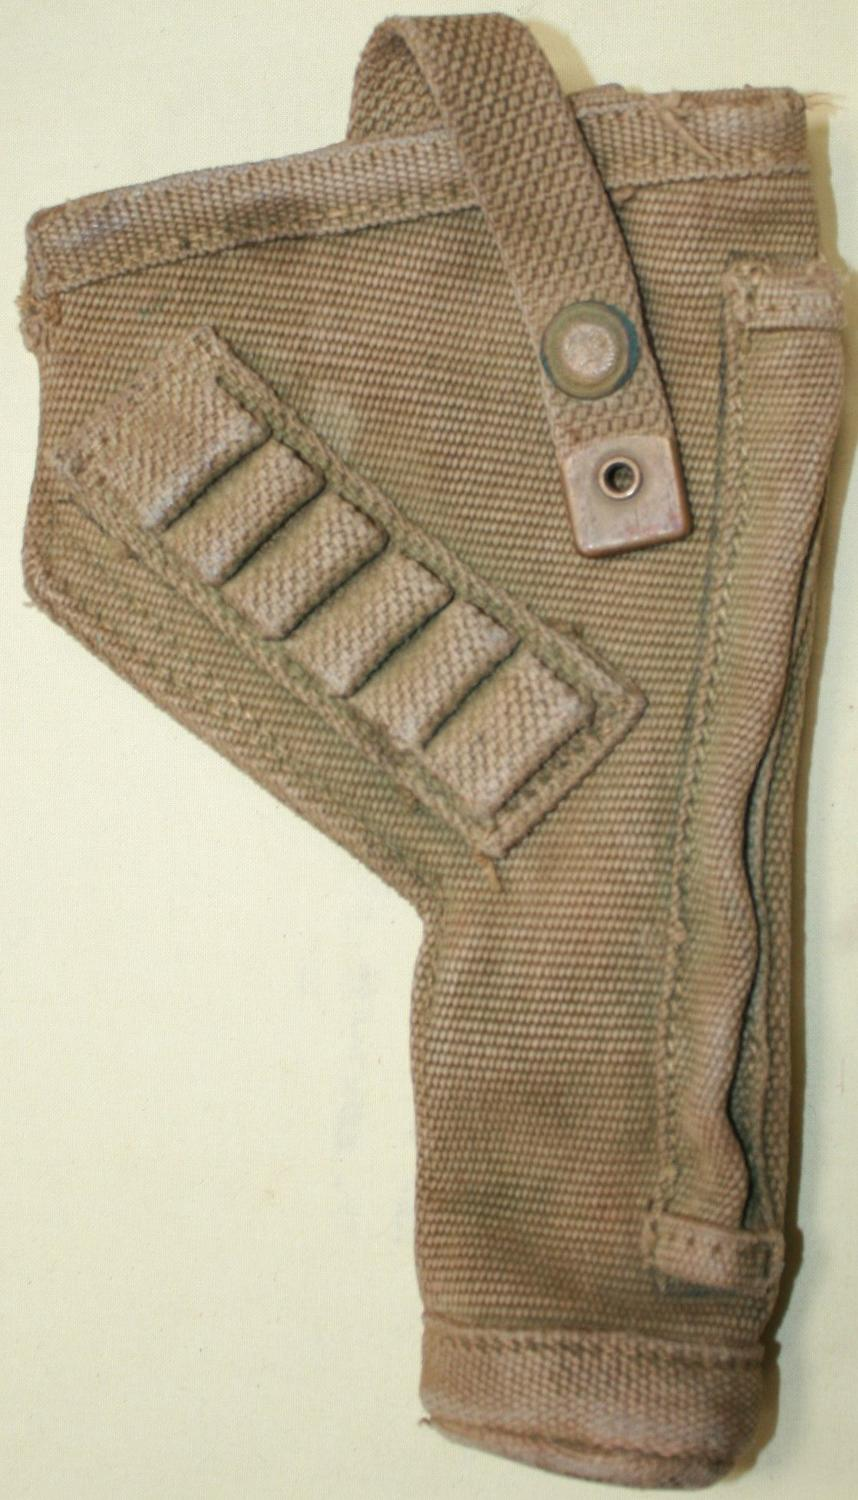 A WWII TANK CREW PISTOL HOLSTER